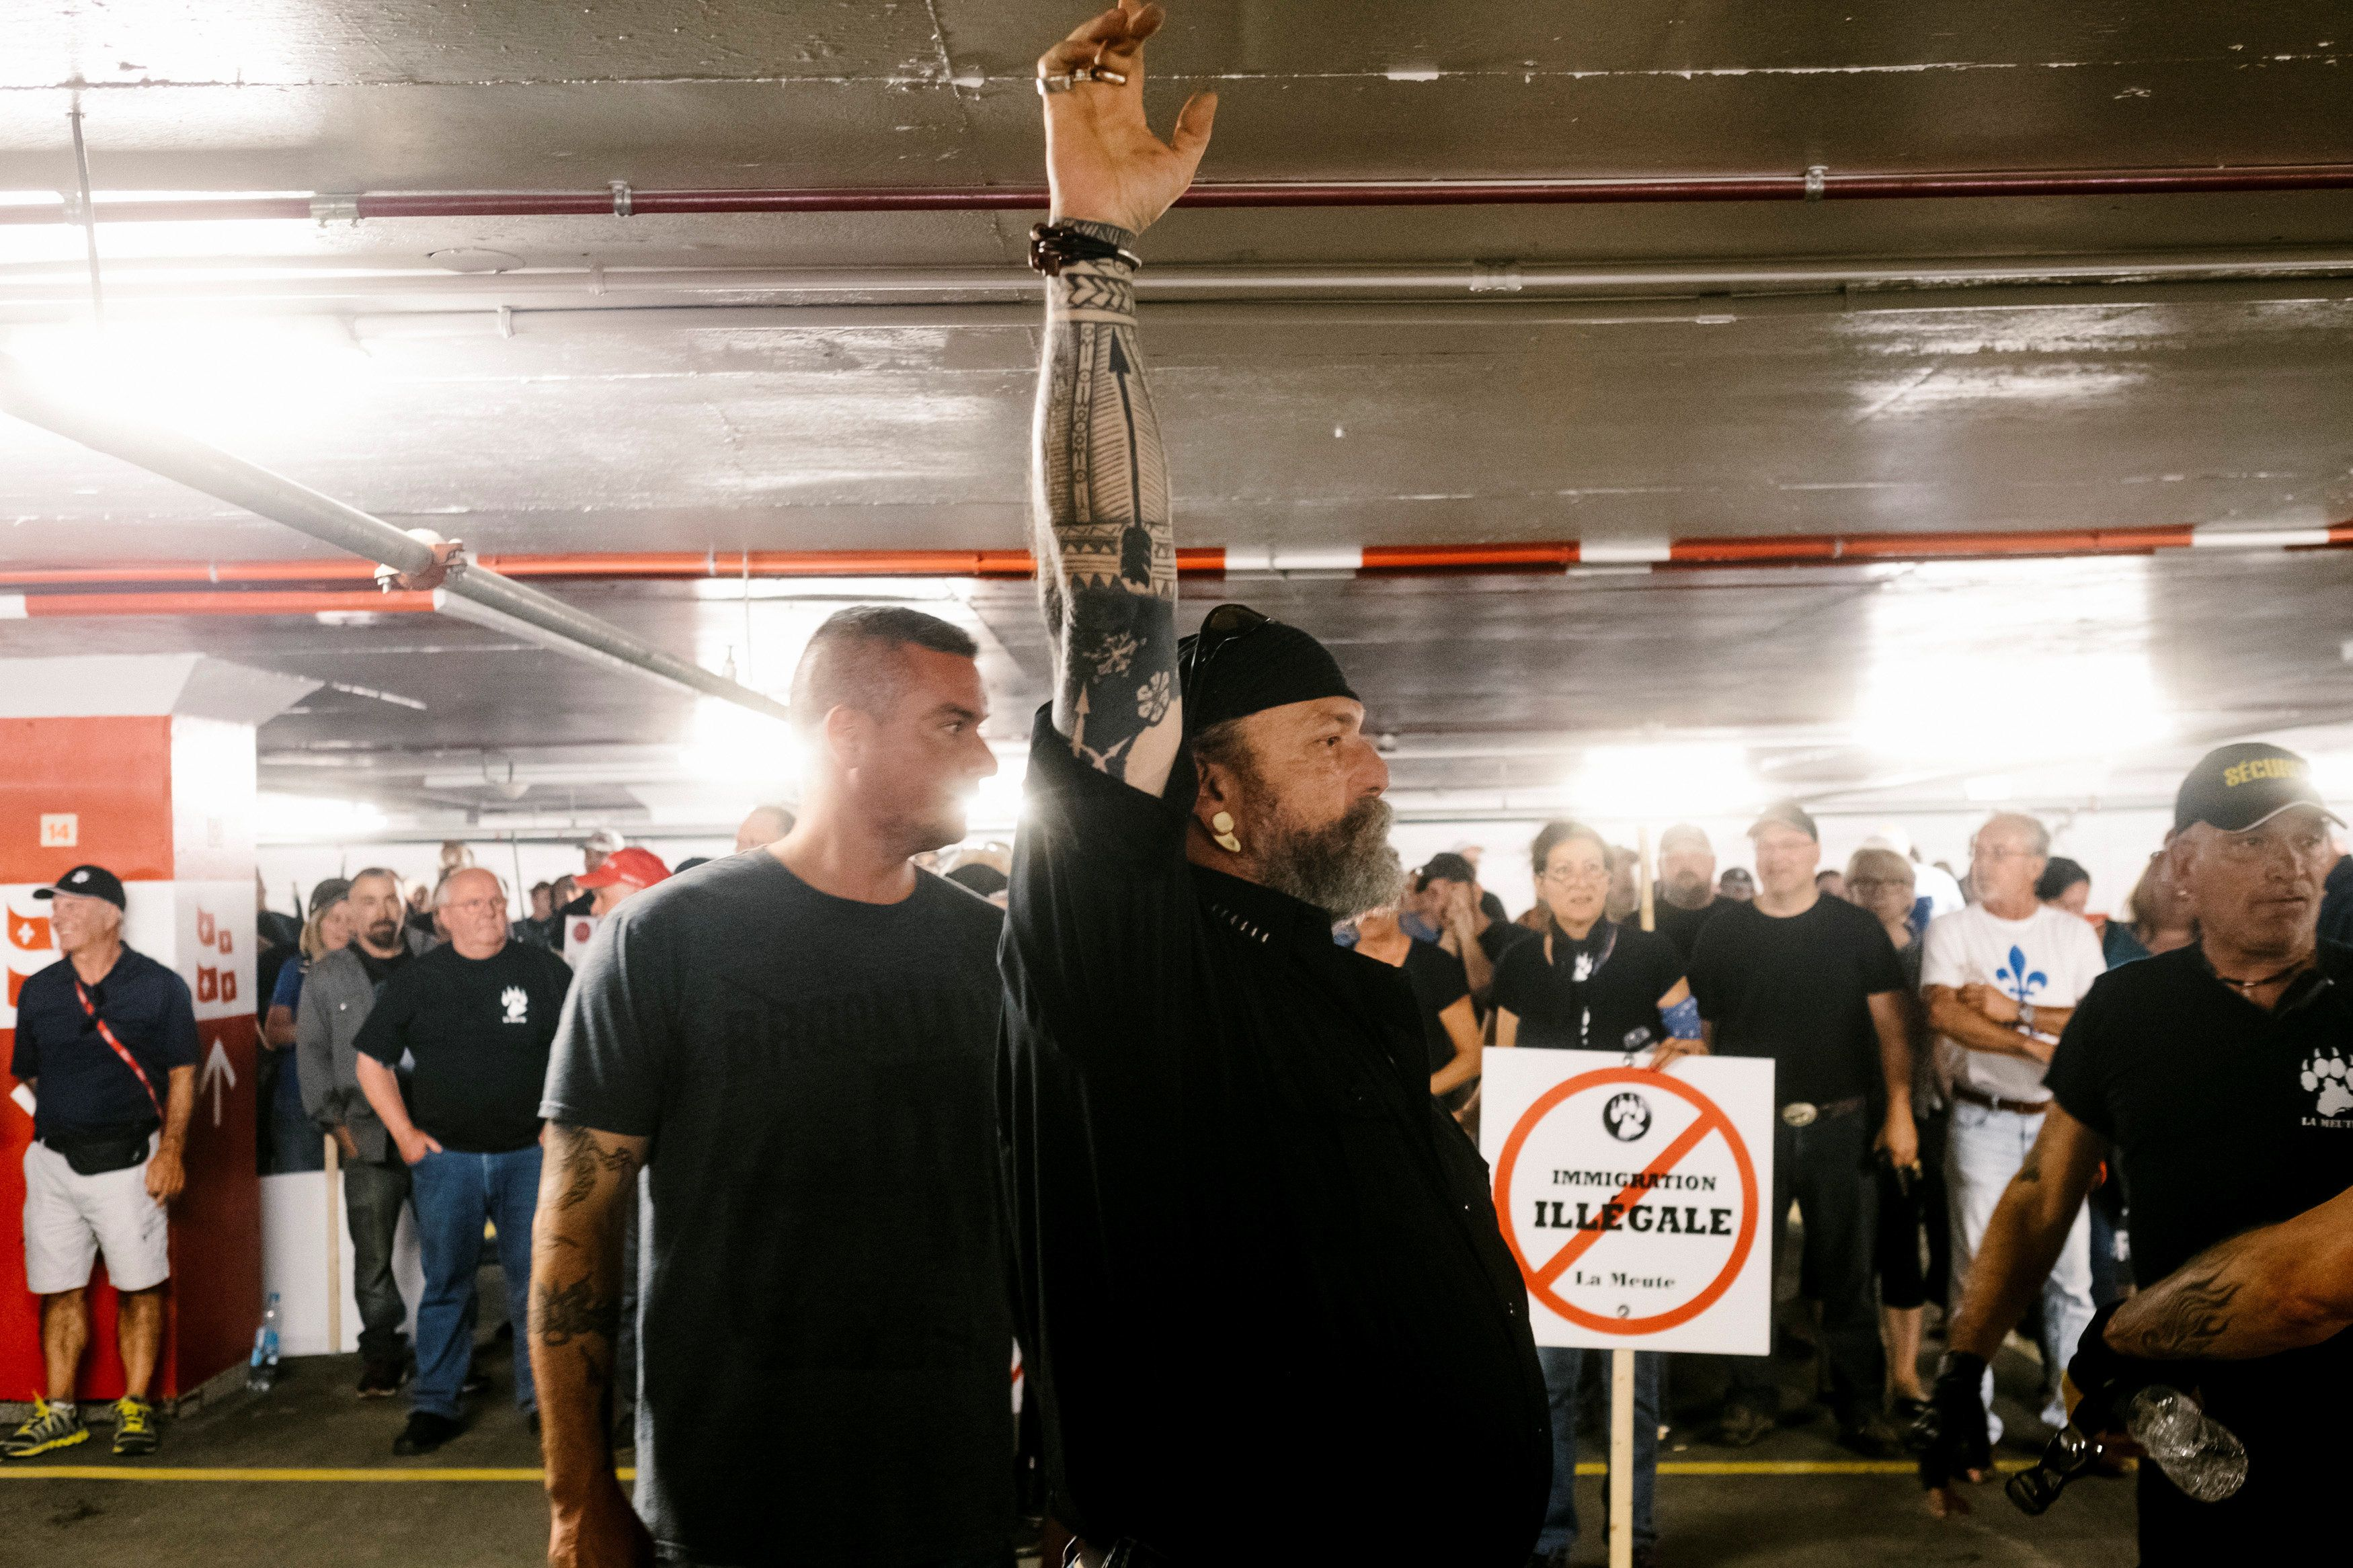 Patrick Beaudry, founder and leader of Quebec group La Meute who were marching to demand stronger border controls, waits in a parking garage due to the presence of counter-protesters outside, in Quebec City, Quebec, Canada August 20, 2017. REUTERS/Renaud Philippe